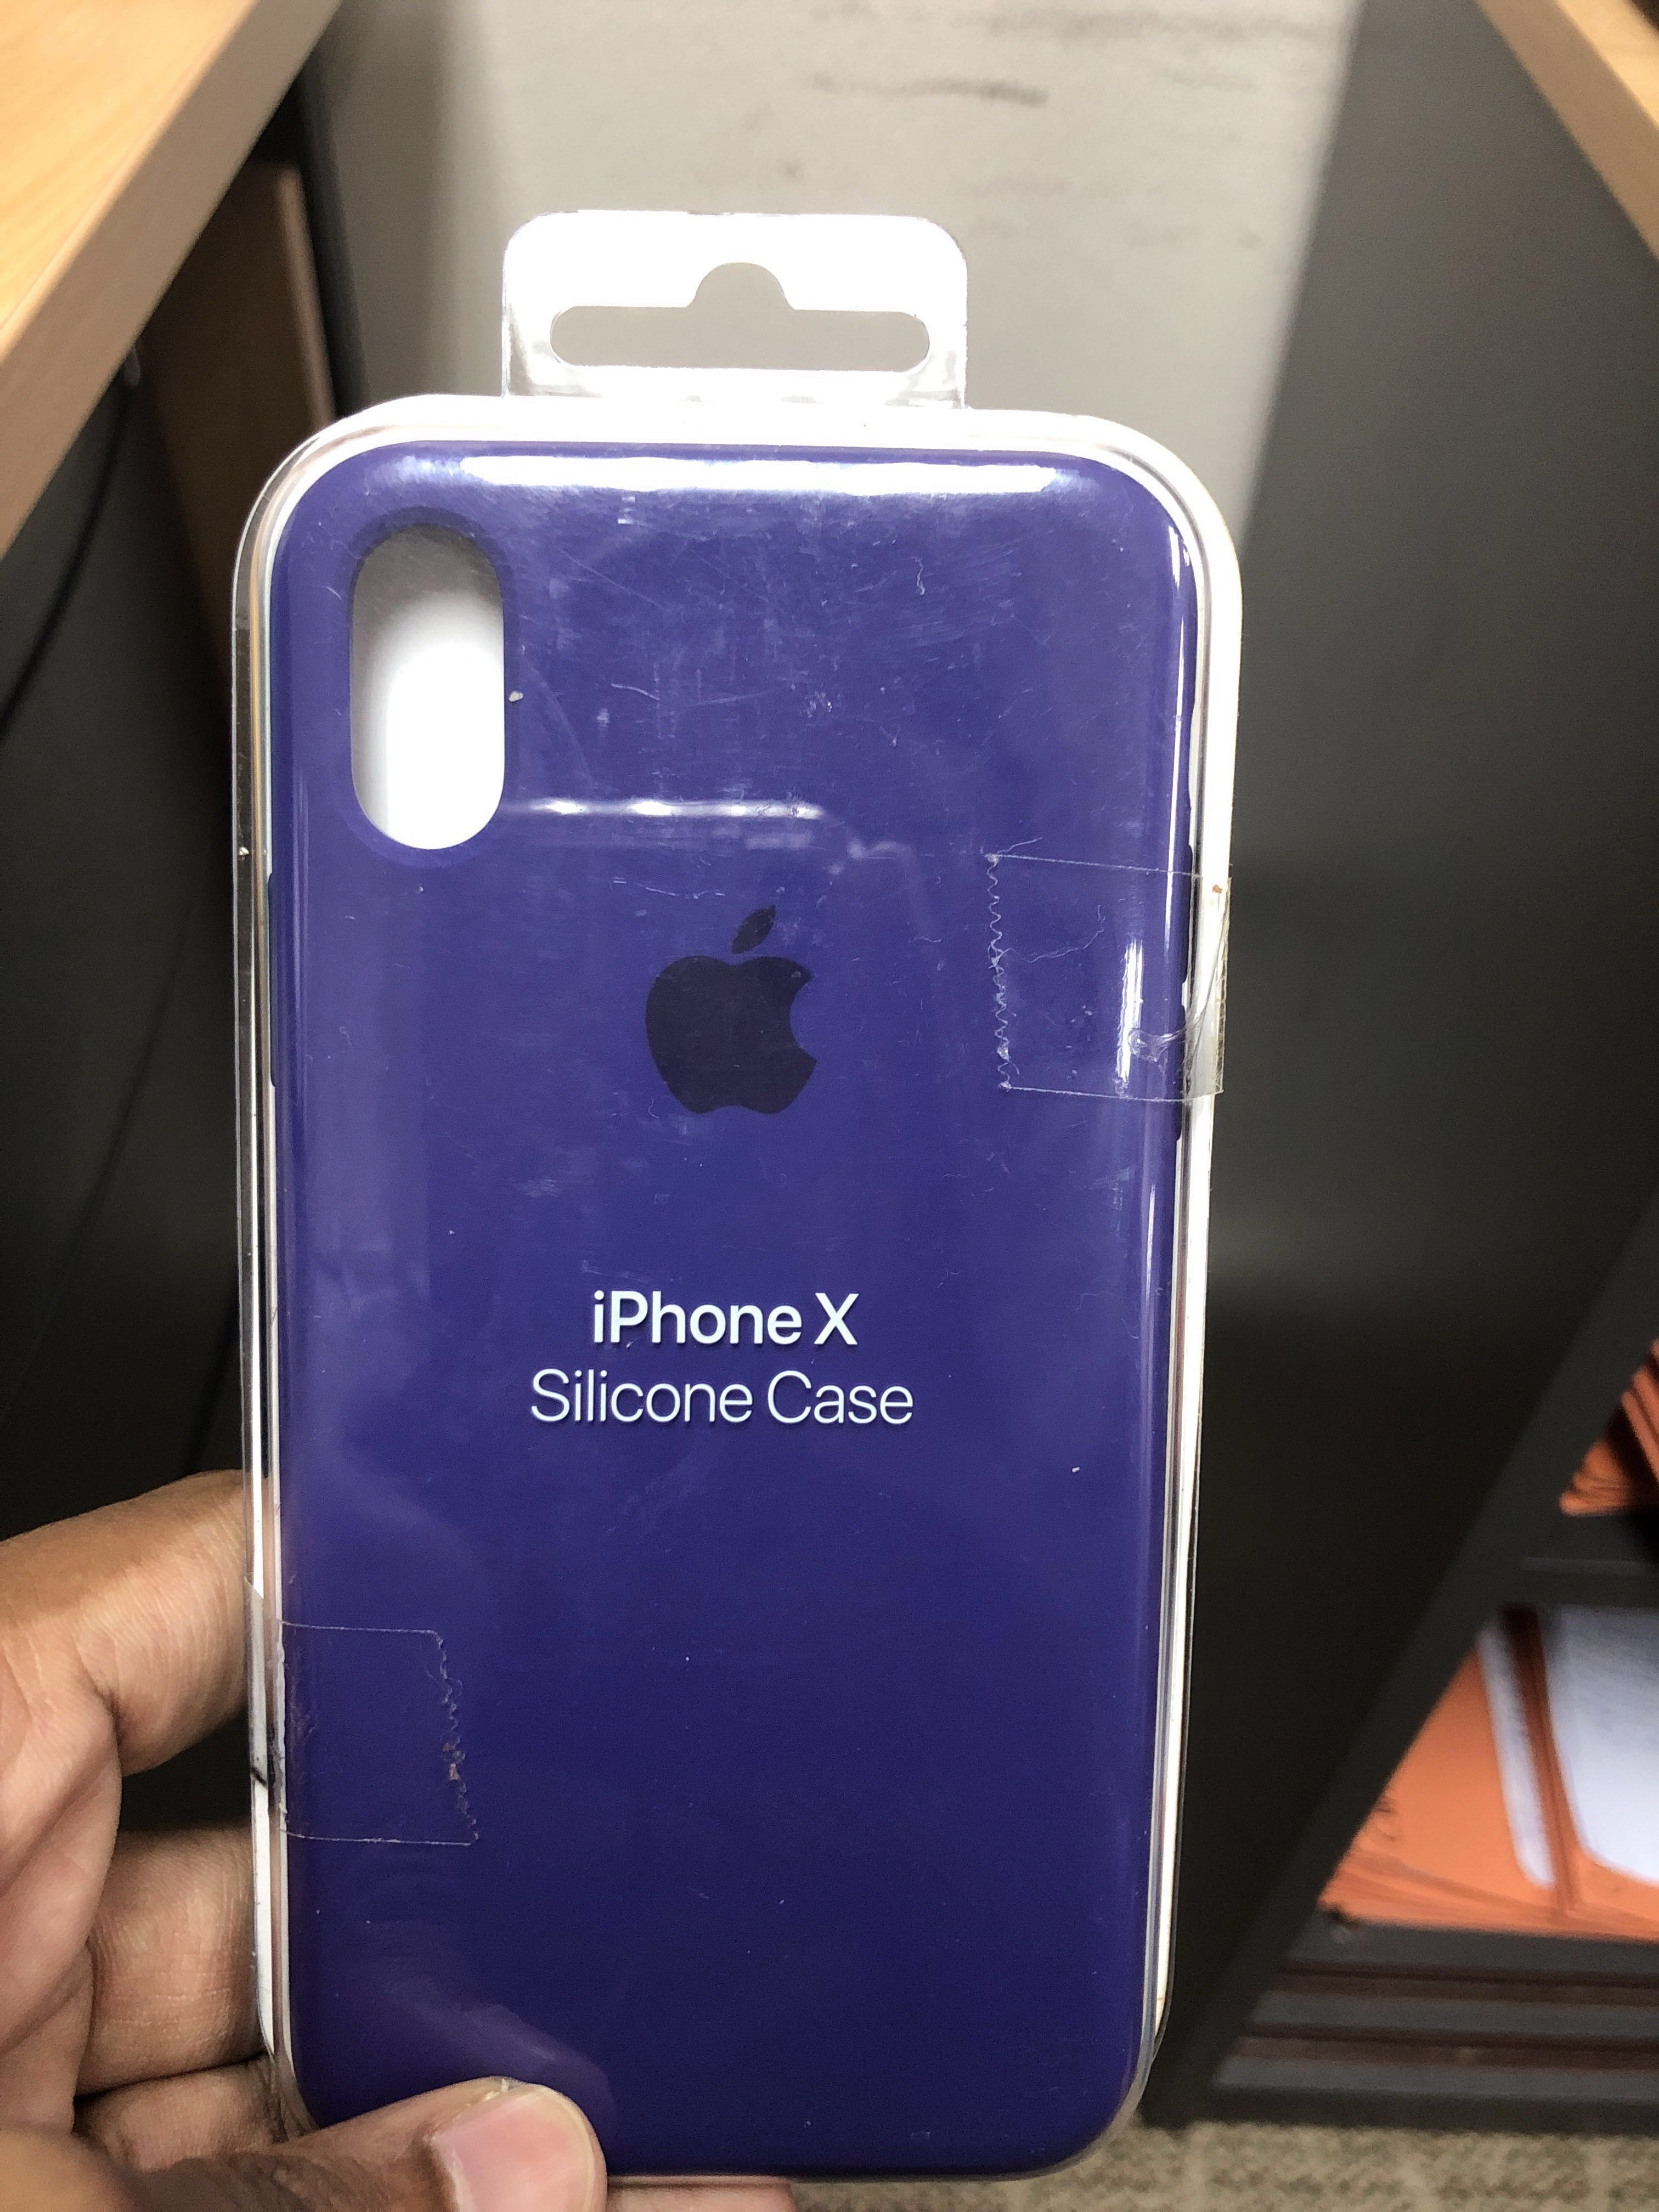 outlet store 55101 63c3b Iphone X - ultra violet apple silicon case